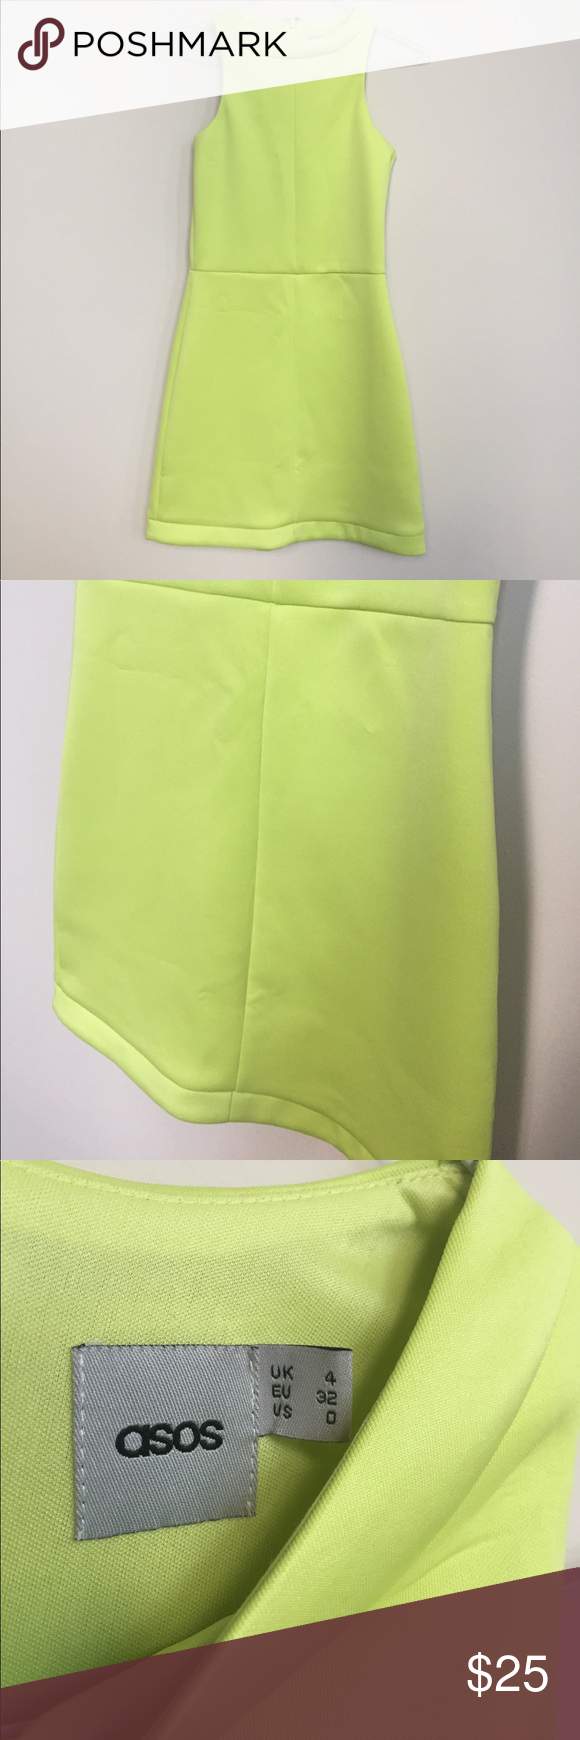 Lime Green ASOS Dress Beautiful ASOS high neck futuristic dress. Like green pop of color. Size 0. In excellent condition! Asos Dresses Mini